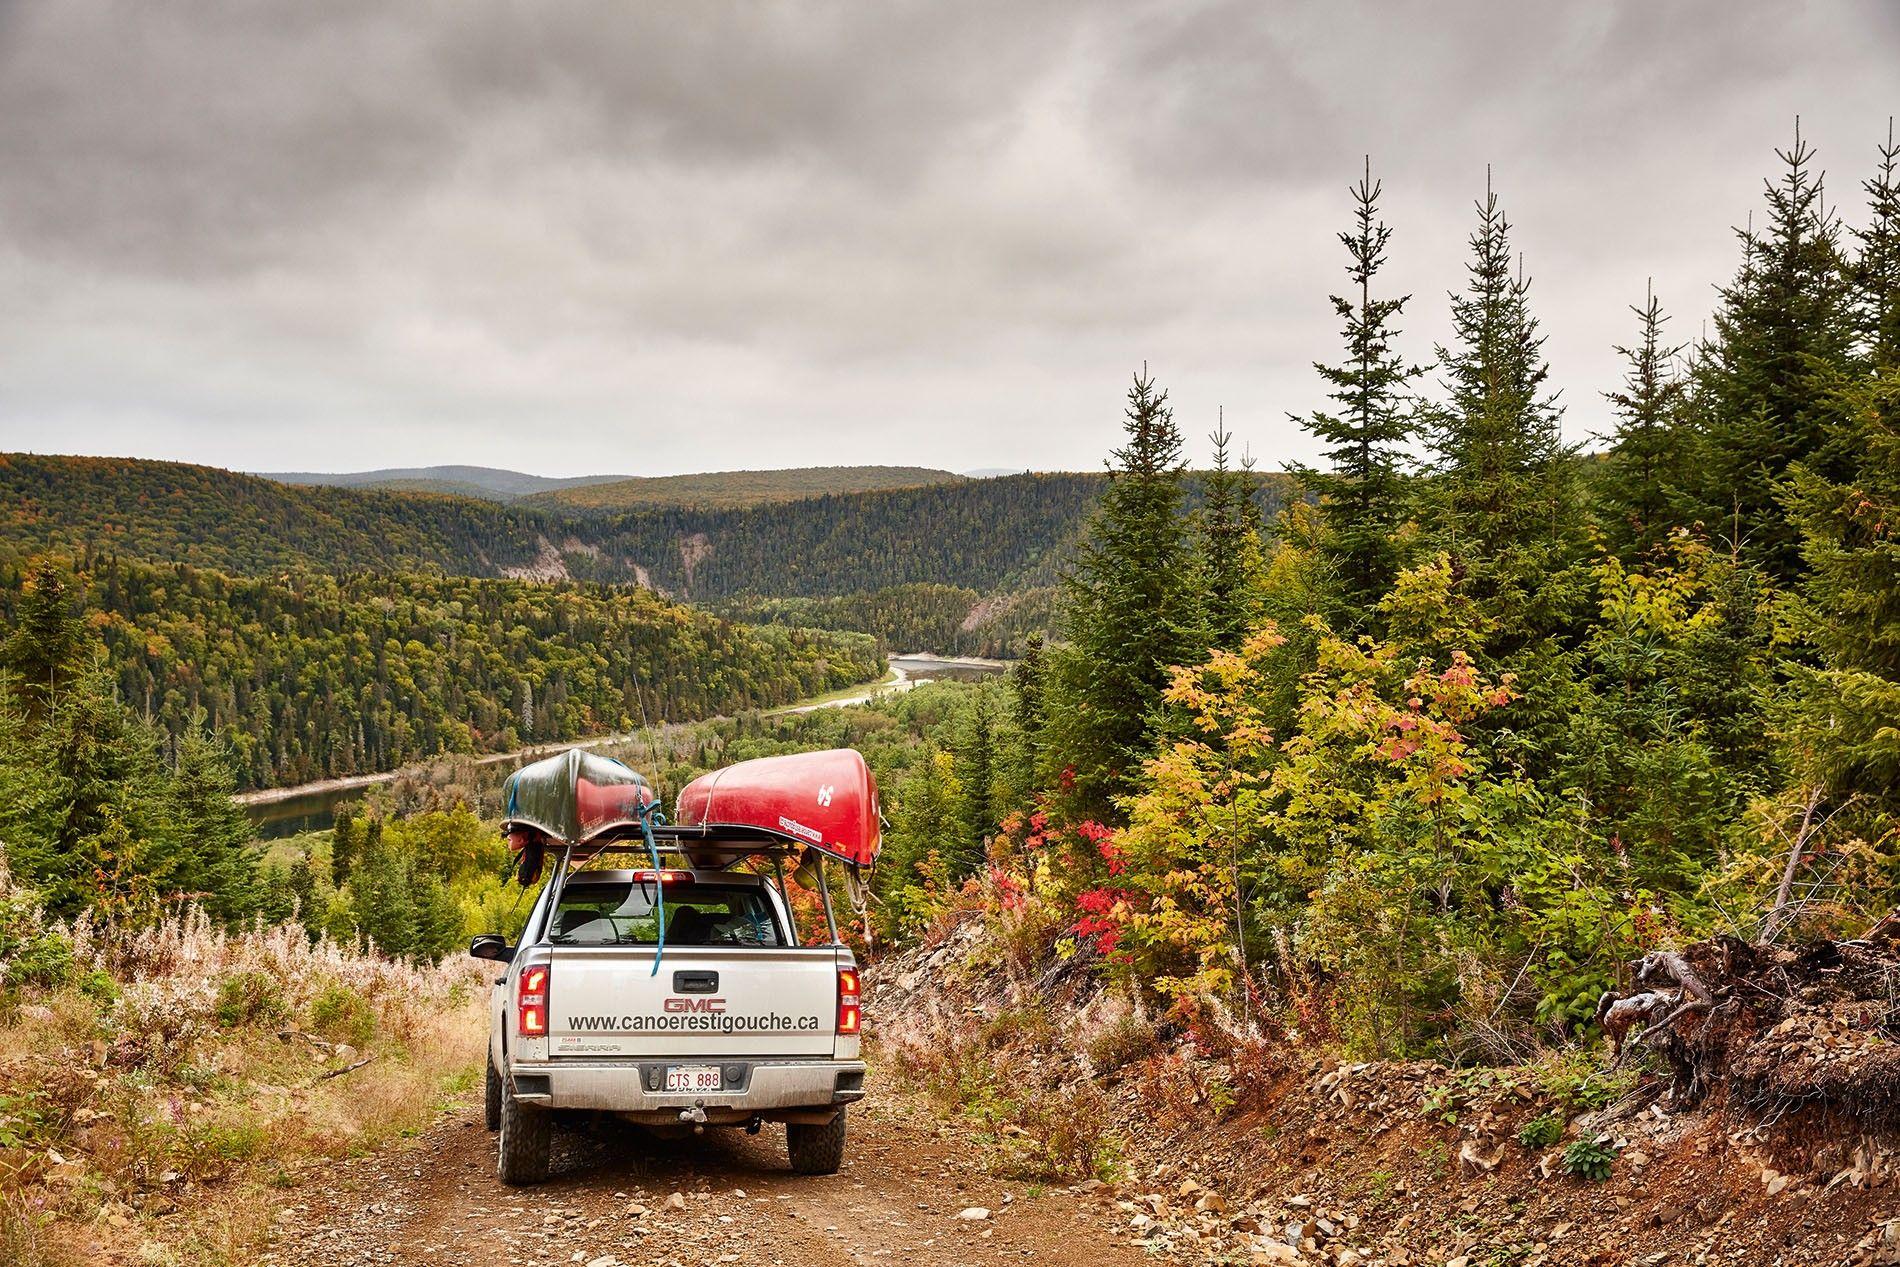 Packing canoes onto a four-wheel-drive vehicle, as clouds draw in across the pristine wilderness.